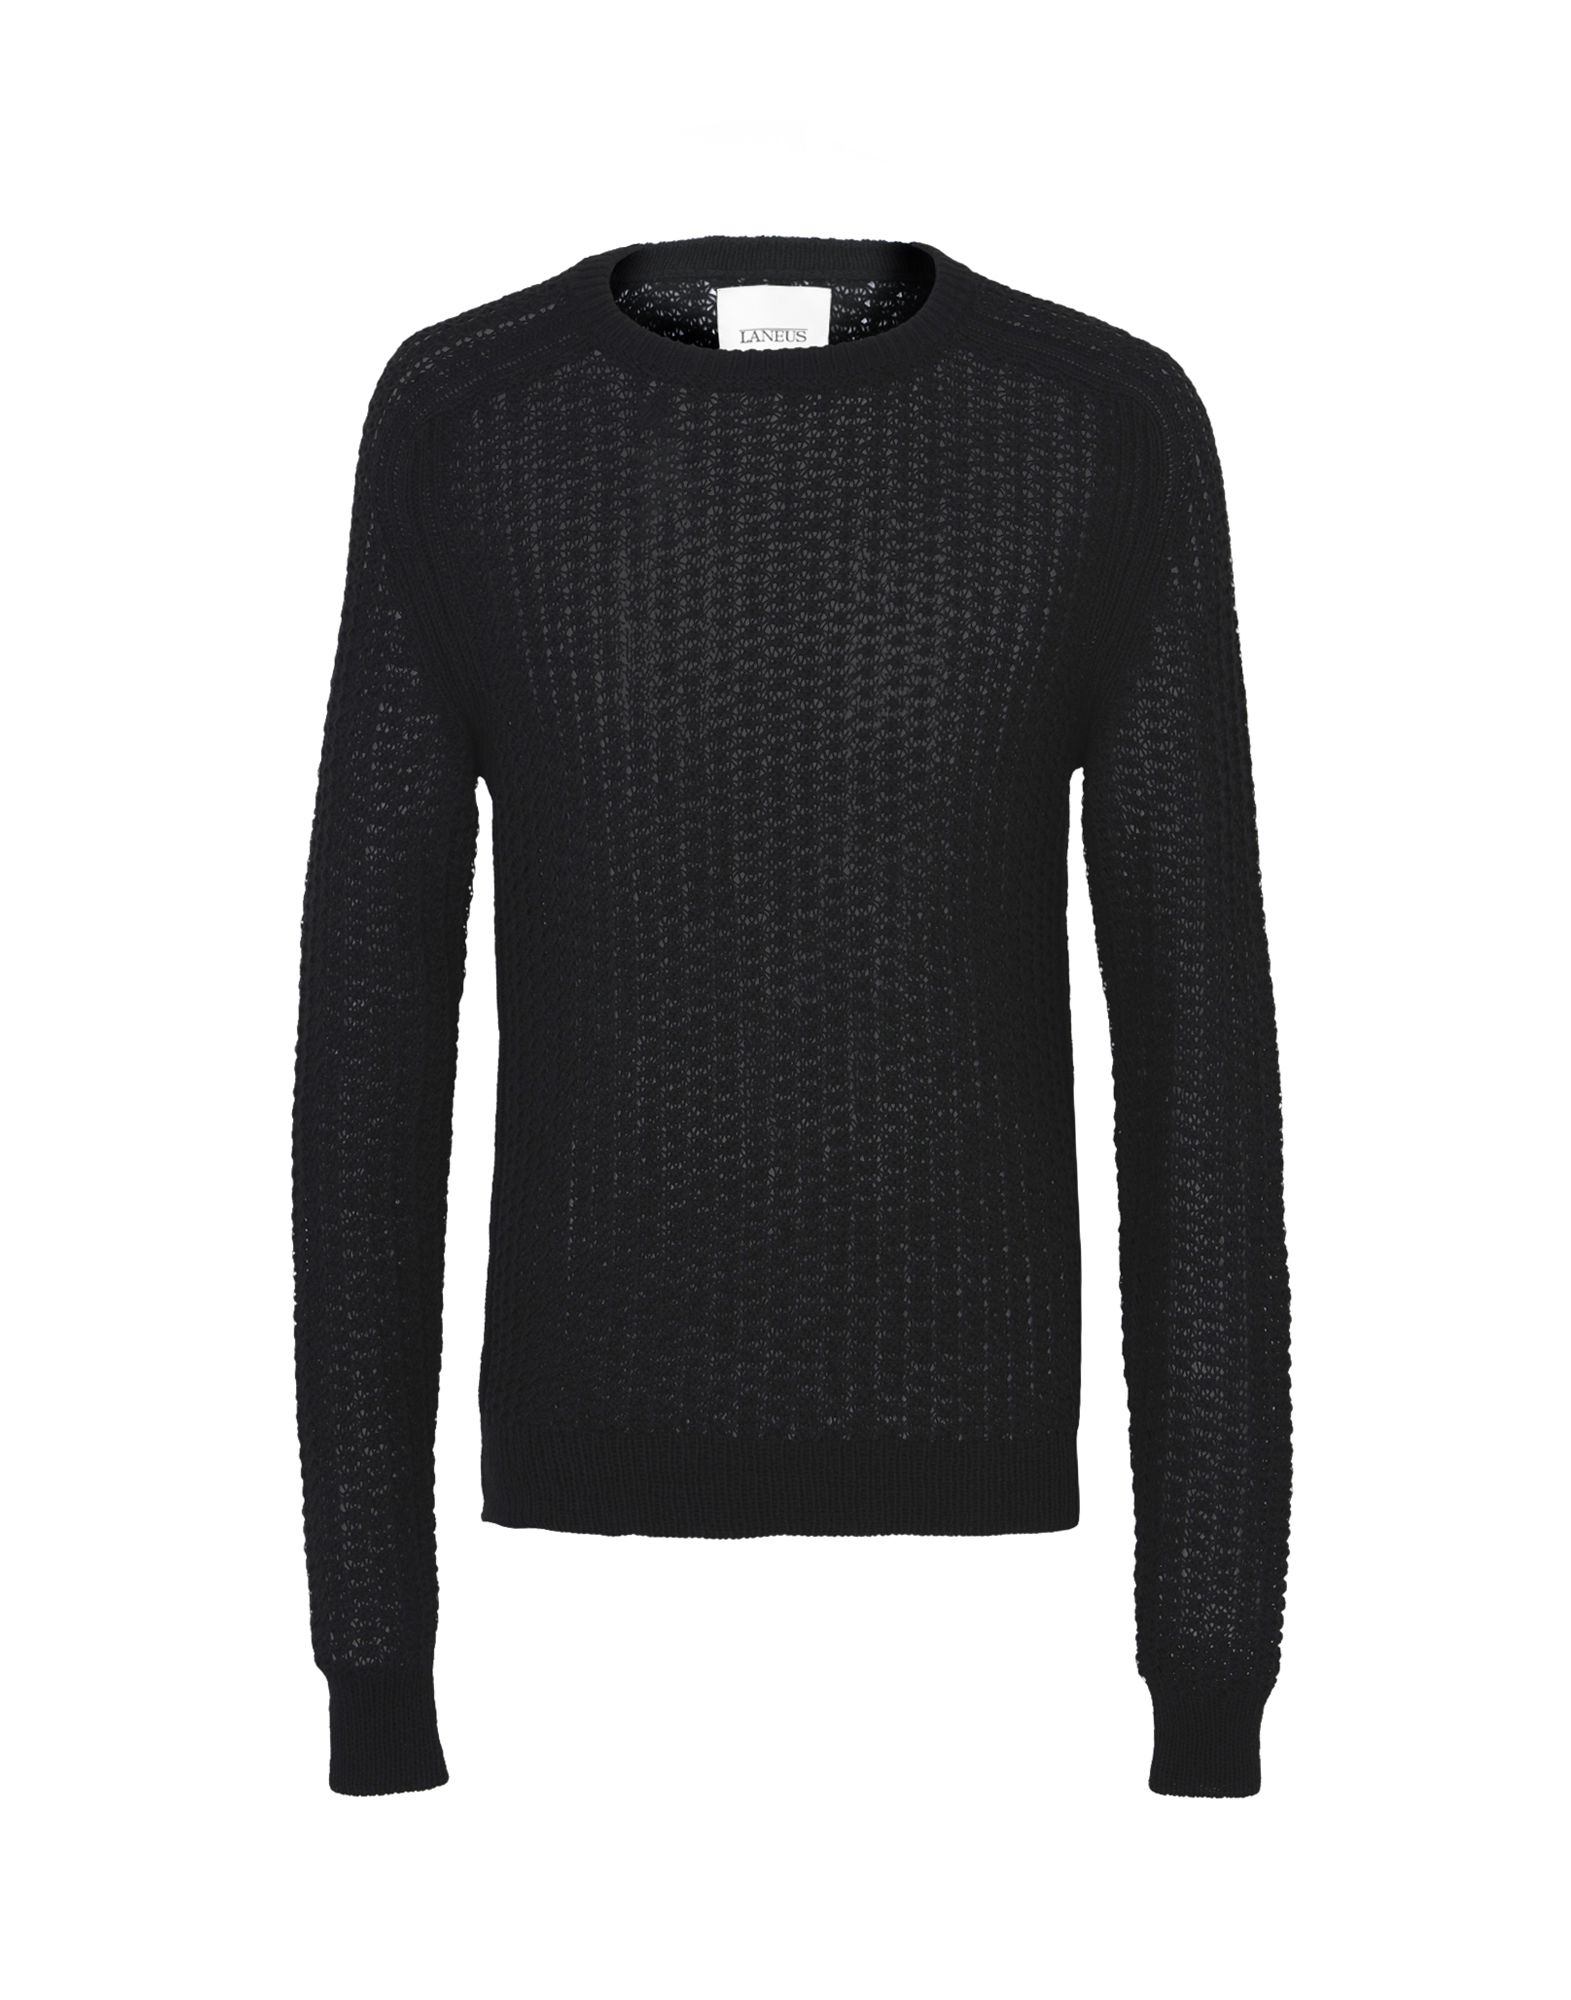 Laneus Men Spring-Summer and Fall-Winter Collections - Shop online at YOOX